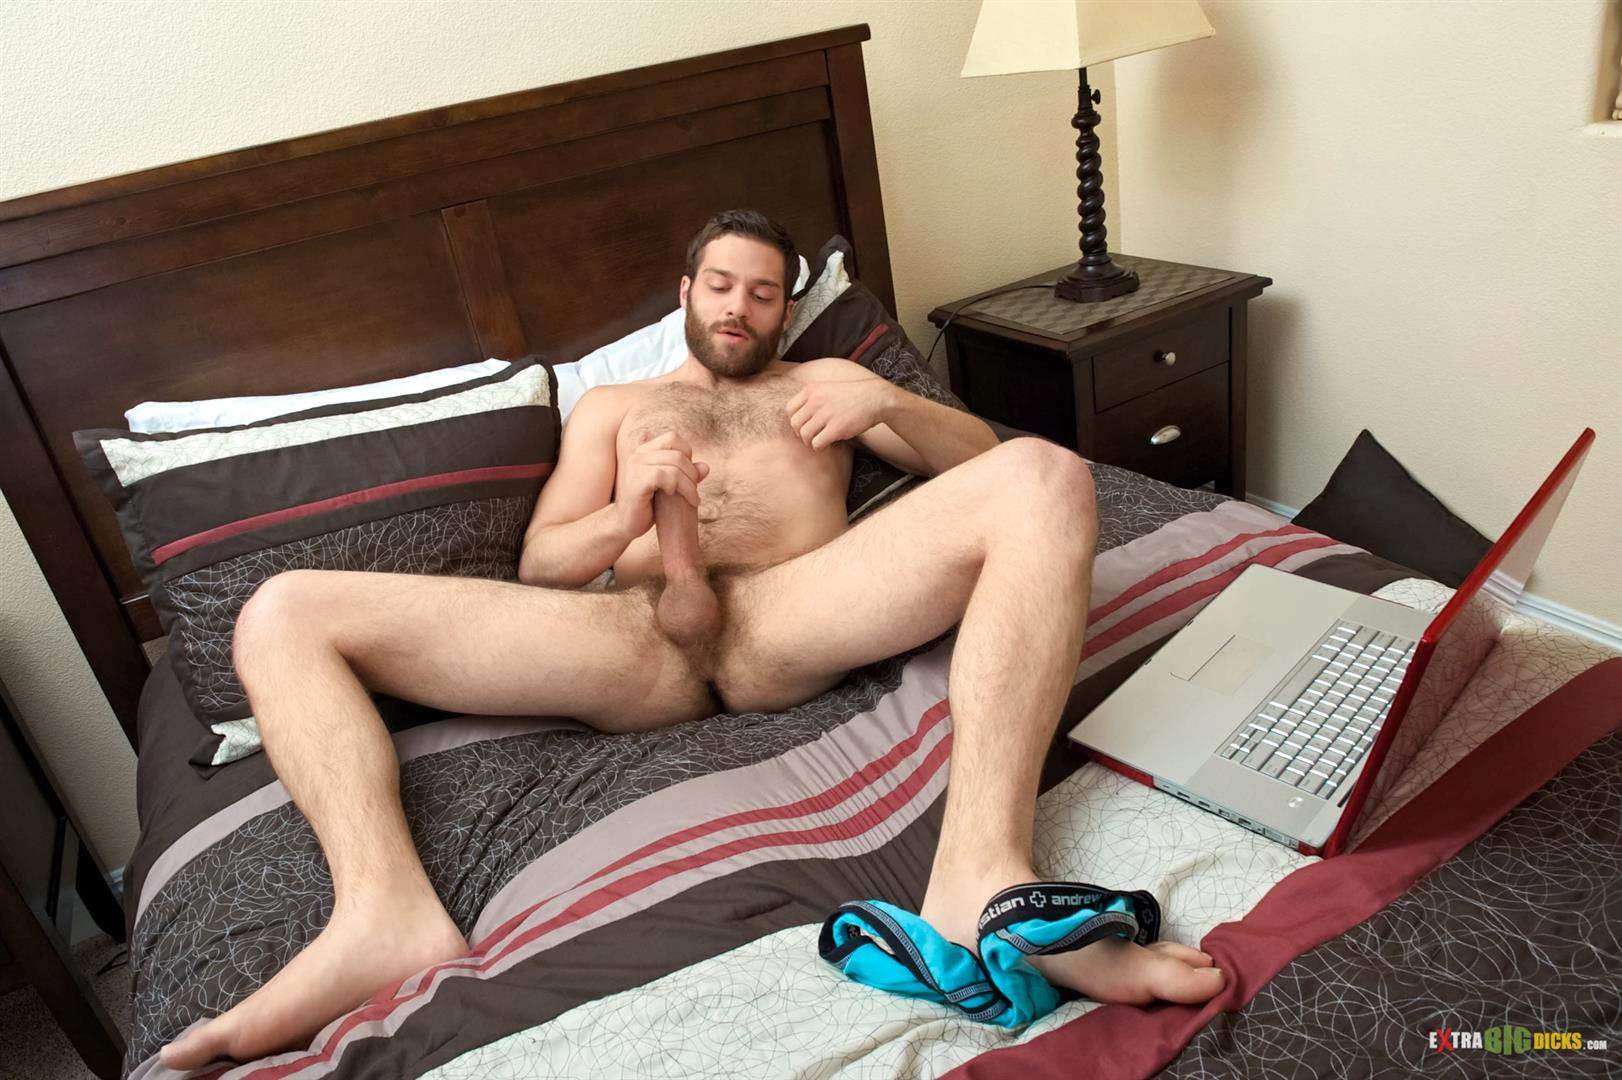 Extra Big Dicks Tommy Defendi Hairy Muscle Guy Jerking Off Amateur Gay Porn 07 Hairy Muscle Stud Tommy Defendi Jerking Off His Big Thick Cock